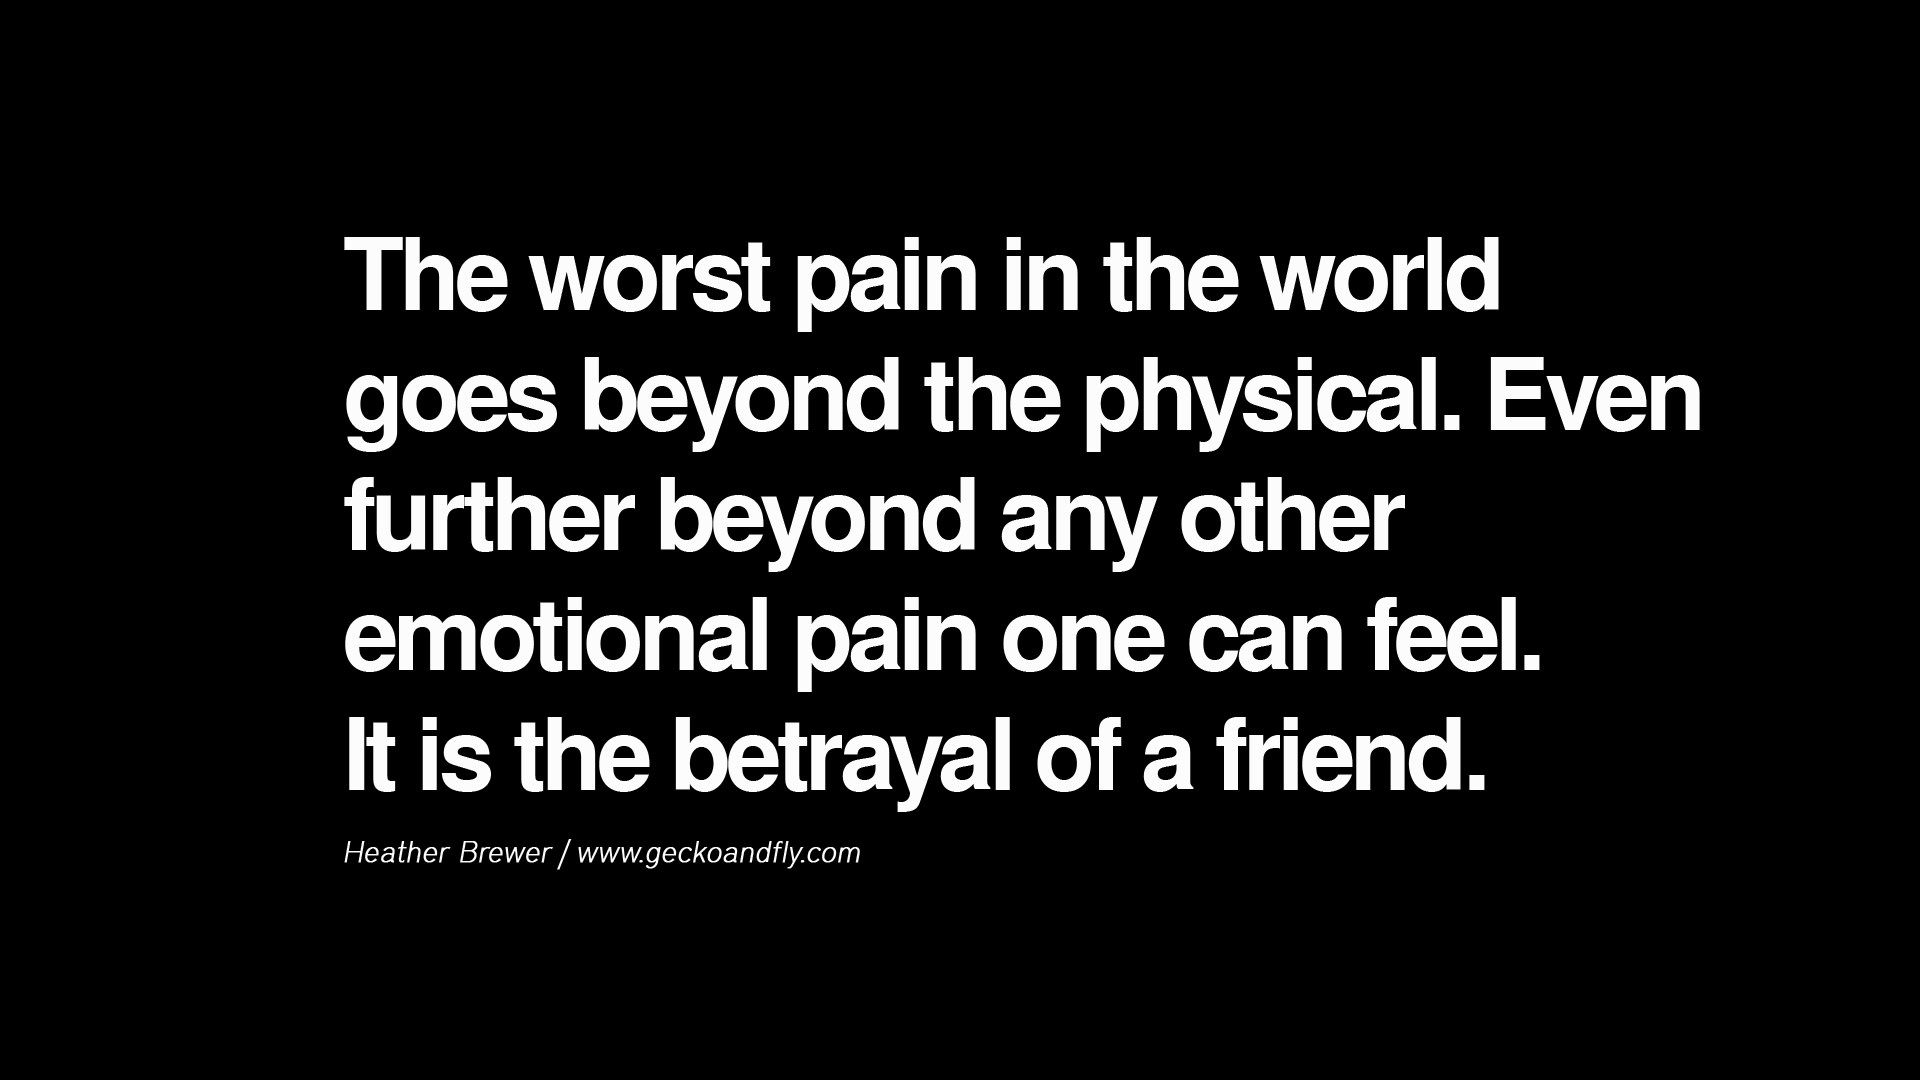 Betrayal Friendship Quotes: Quotes On Friendship, Trust And Love Betrayal The Worst